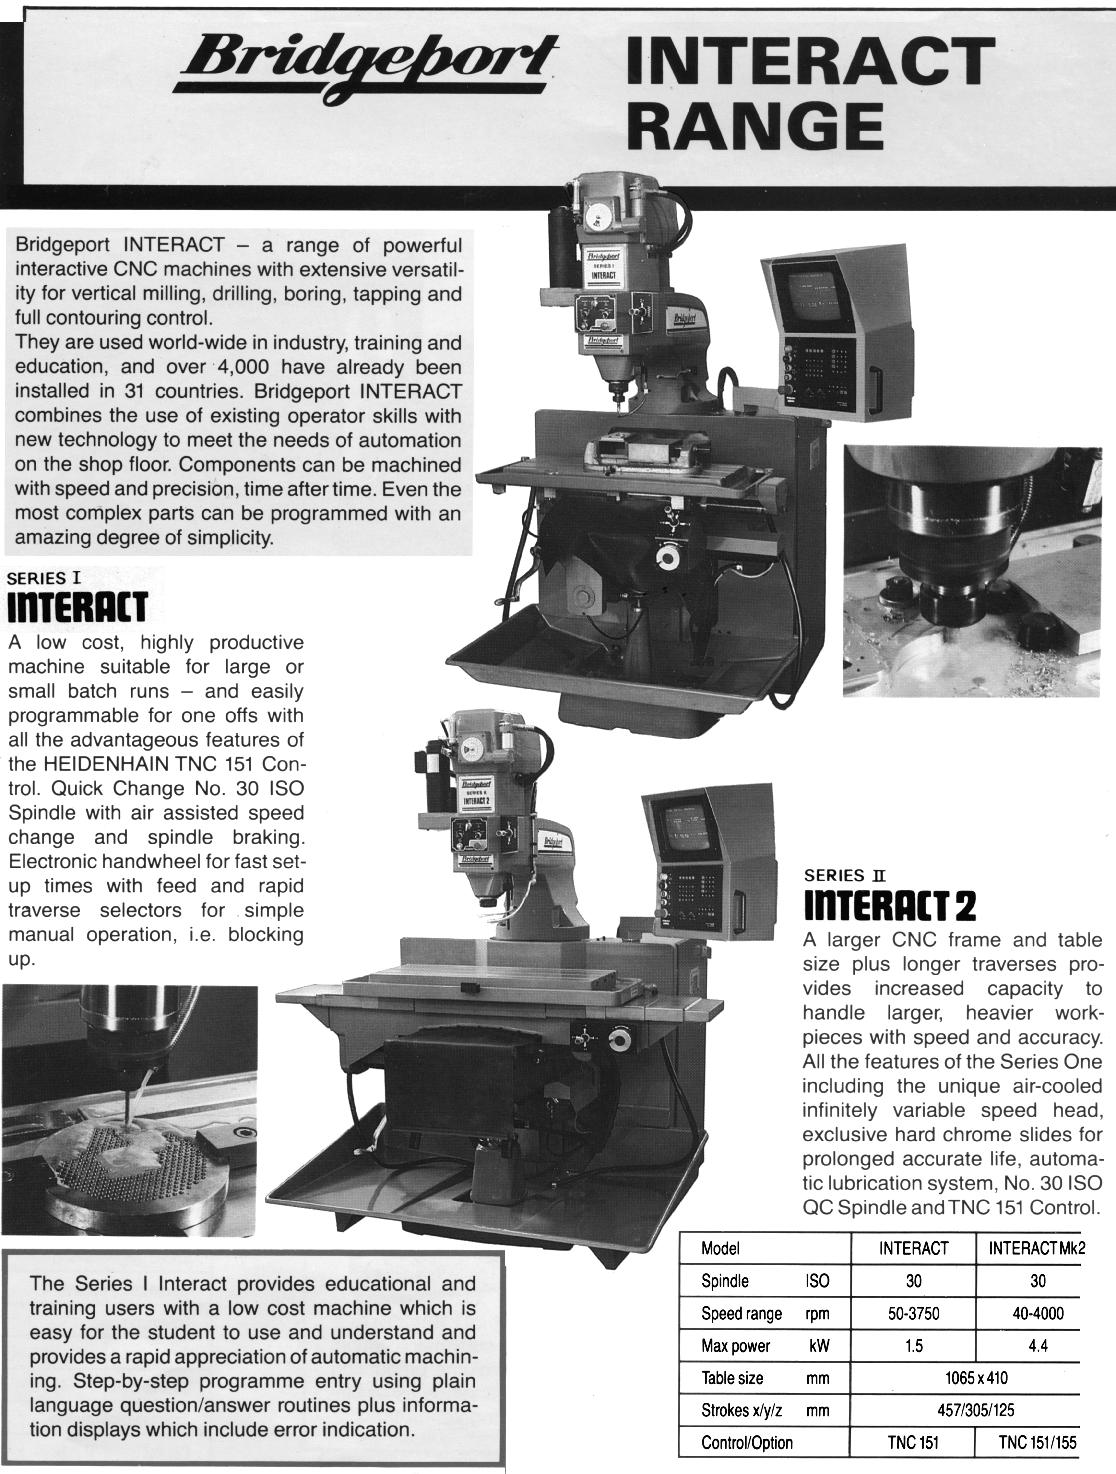 Bridgeport Home Page Manuals for Bridgeport Machine tools can be found here